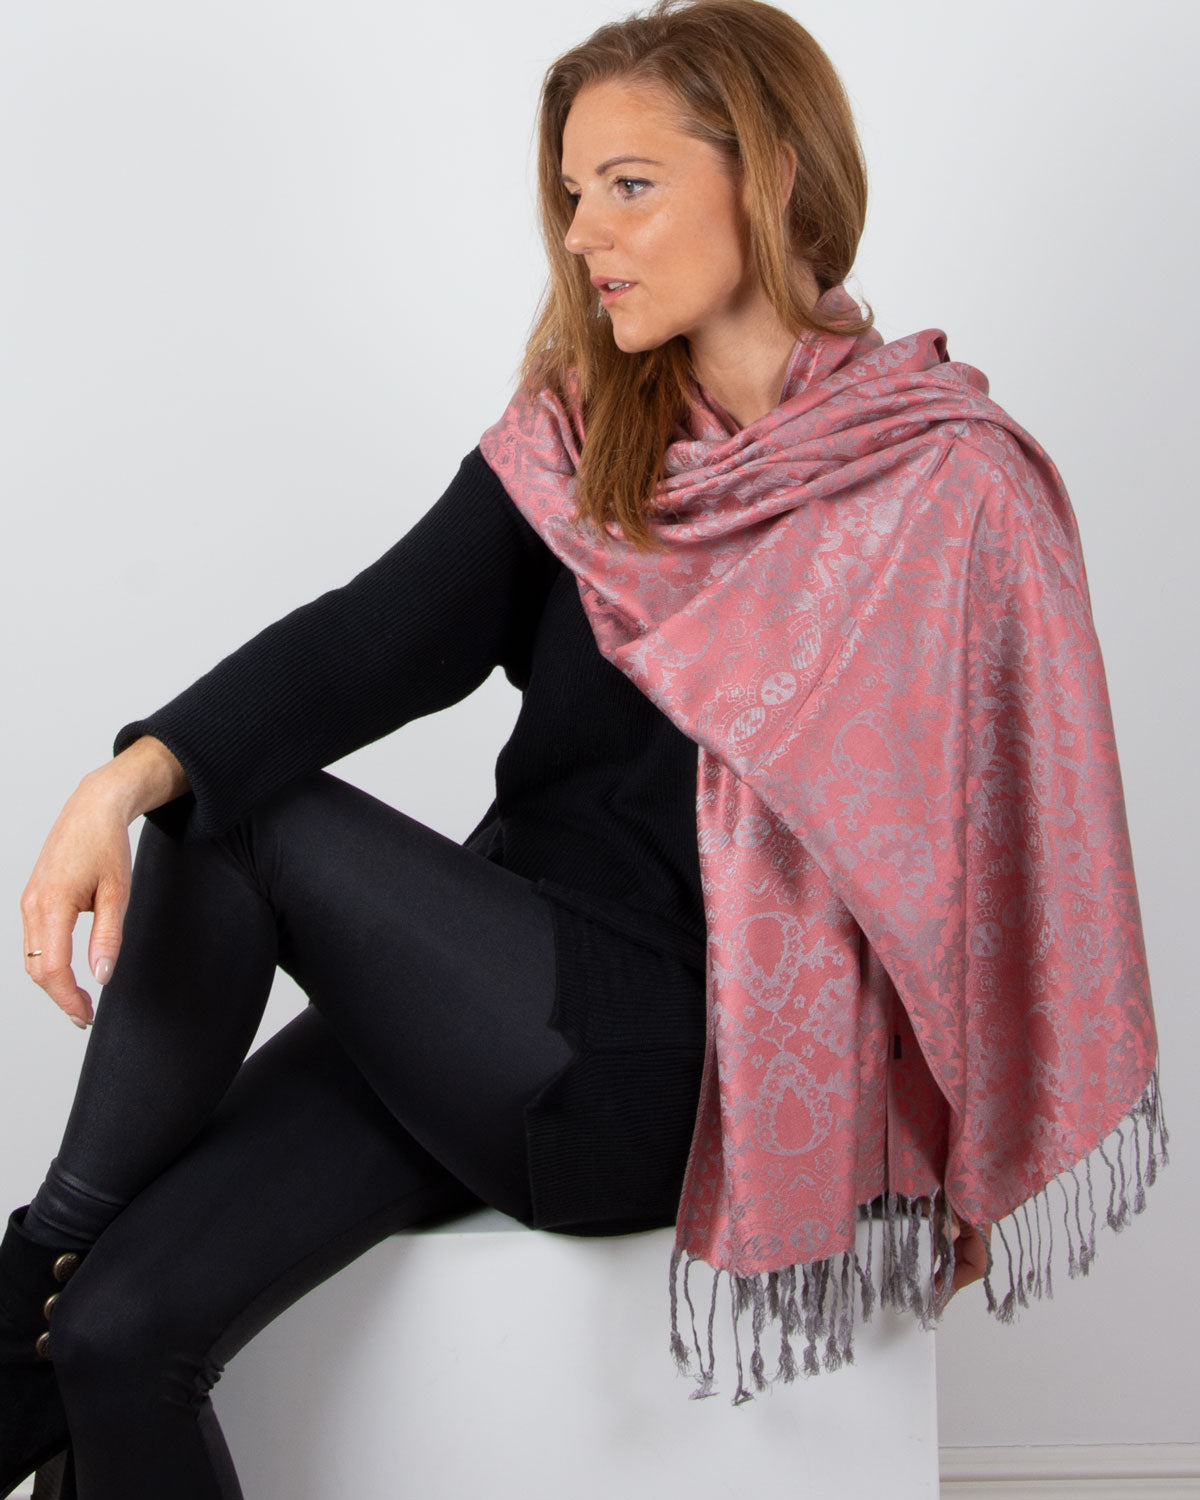 an image showing a pink and silver patterned pashmina